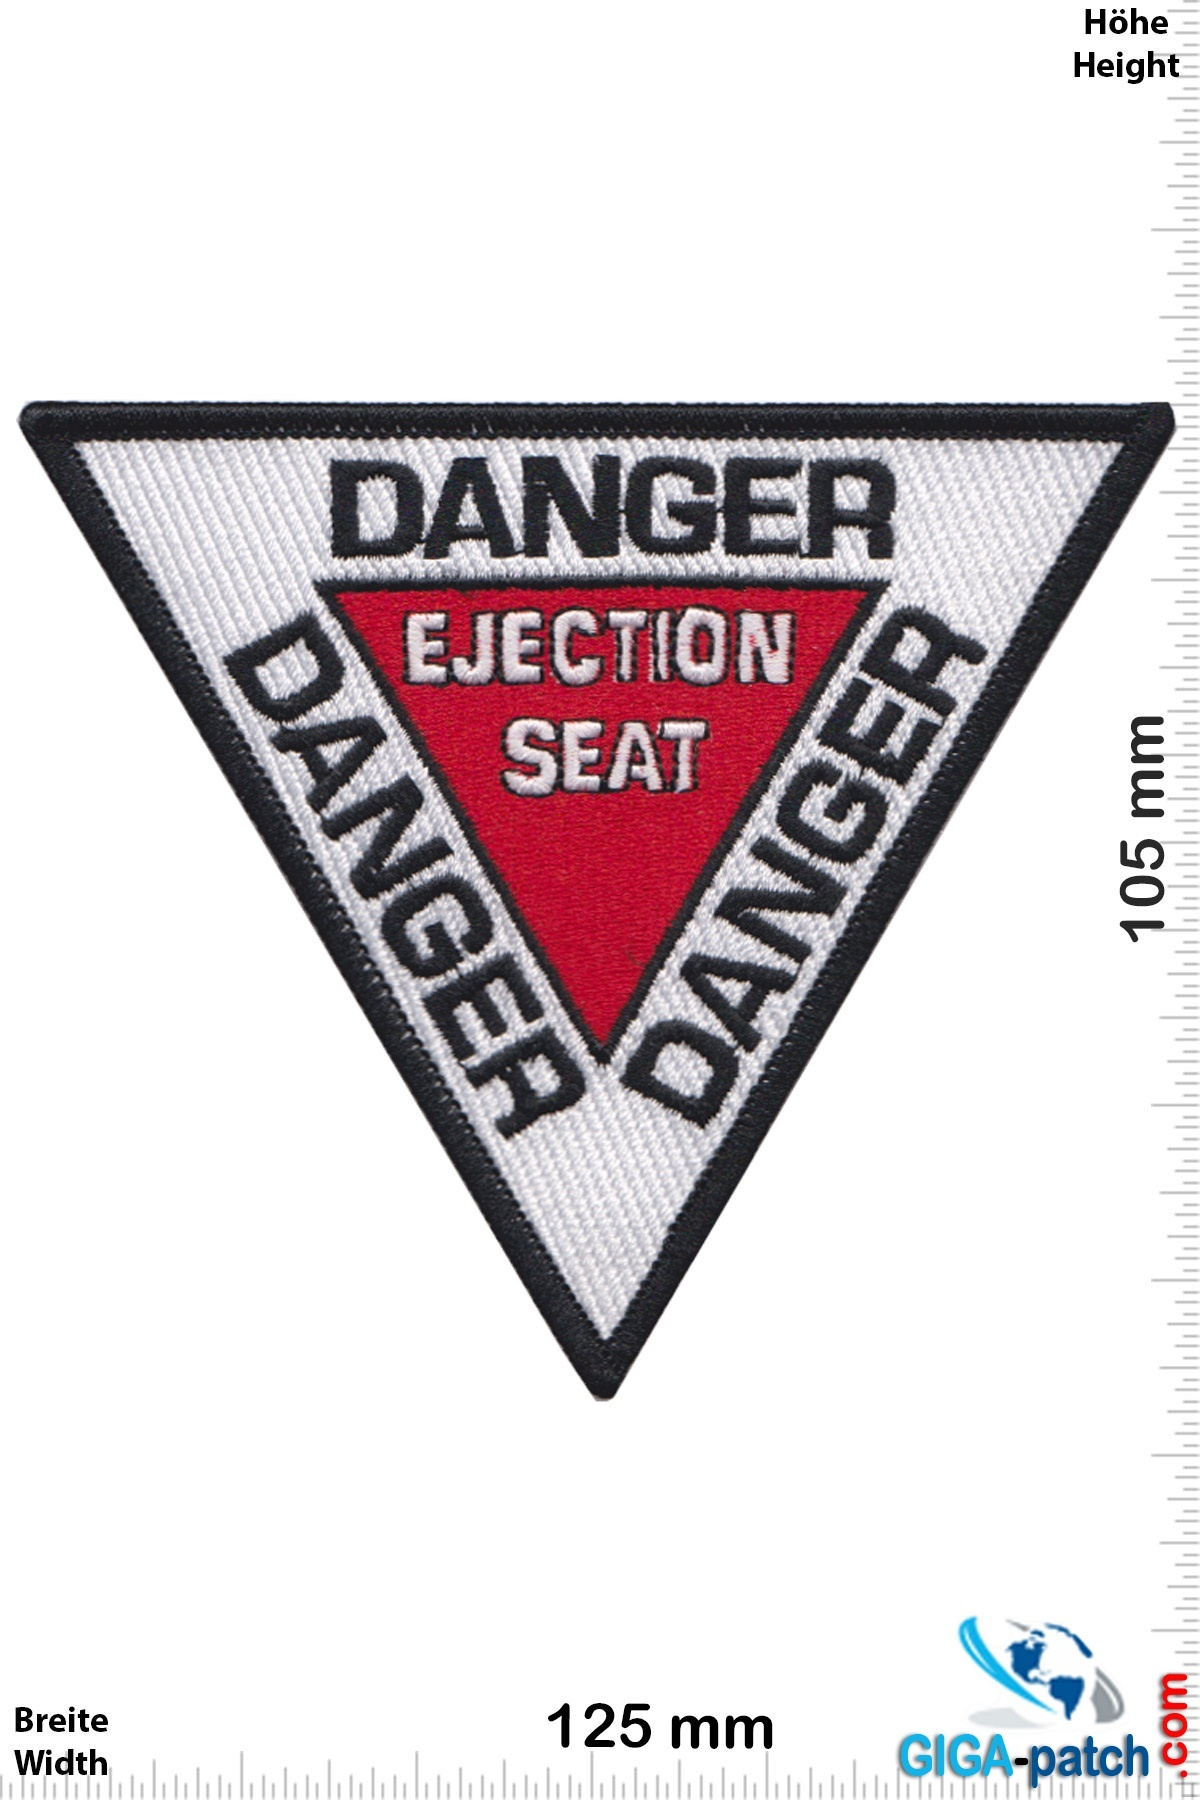 U.S. Navy DANGER Ejection Seat - HQ